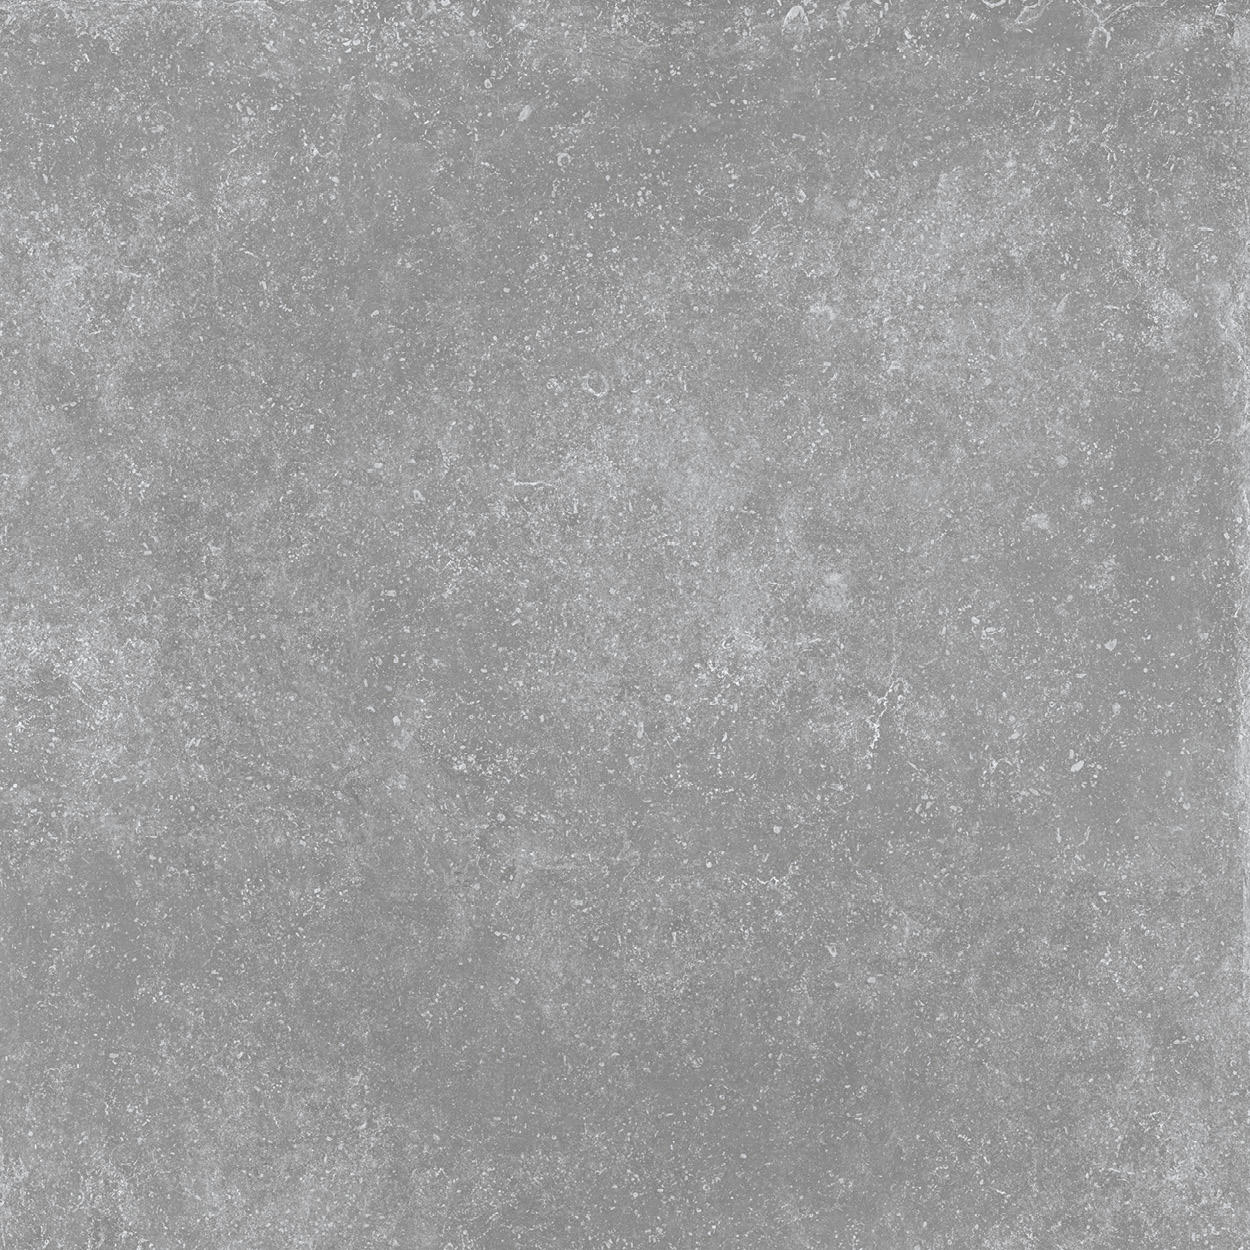 32 X 32 Marwari Rain Rectified Porcelain Tile (SPECIAL ORDER ONLY)